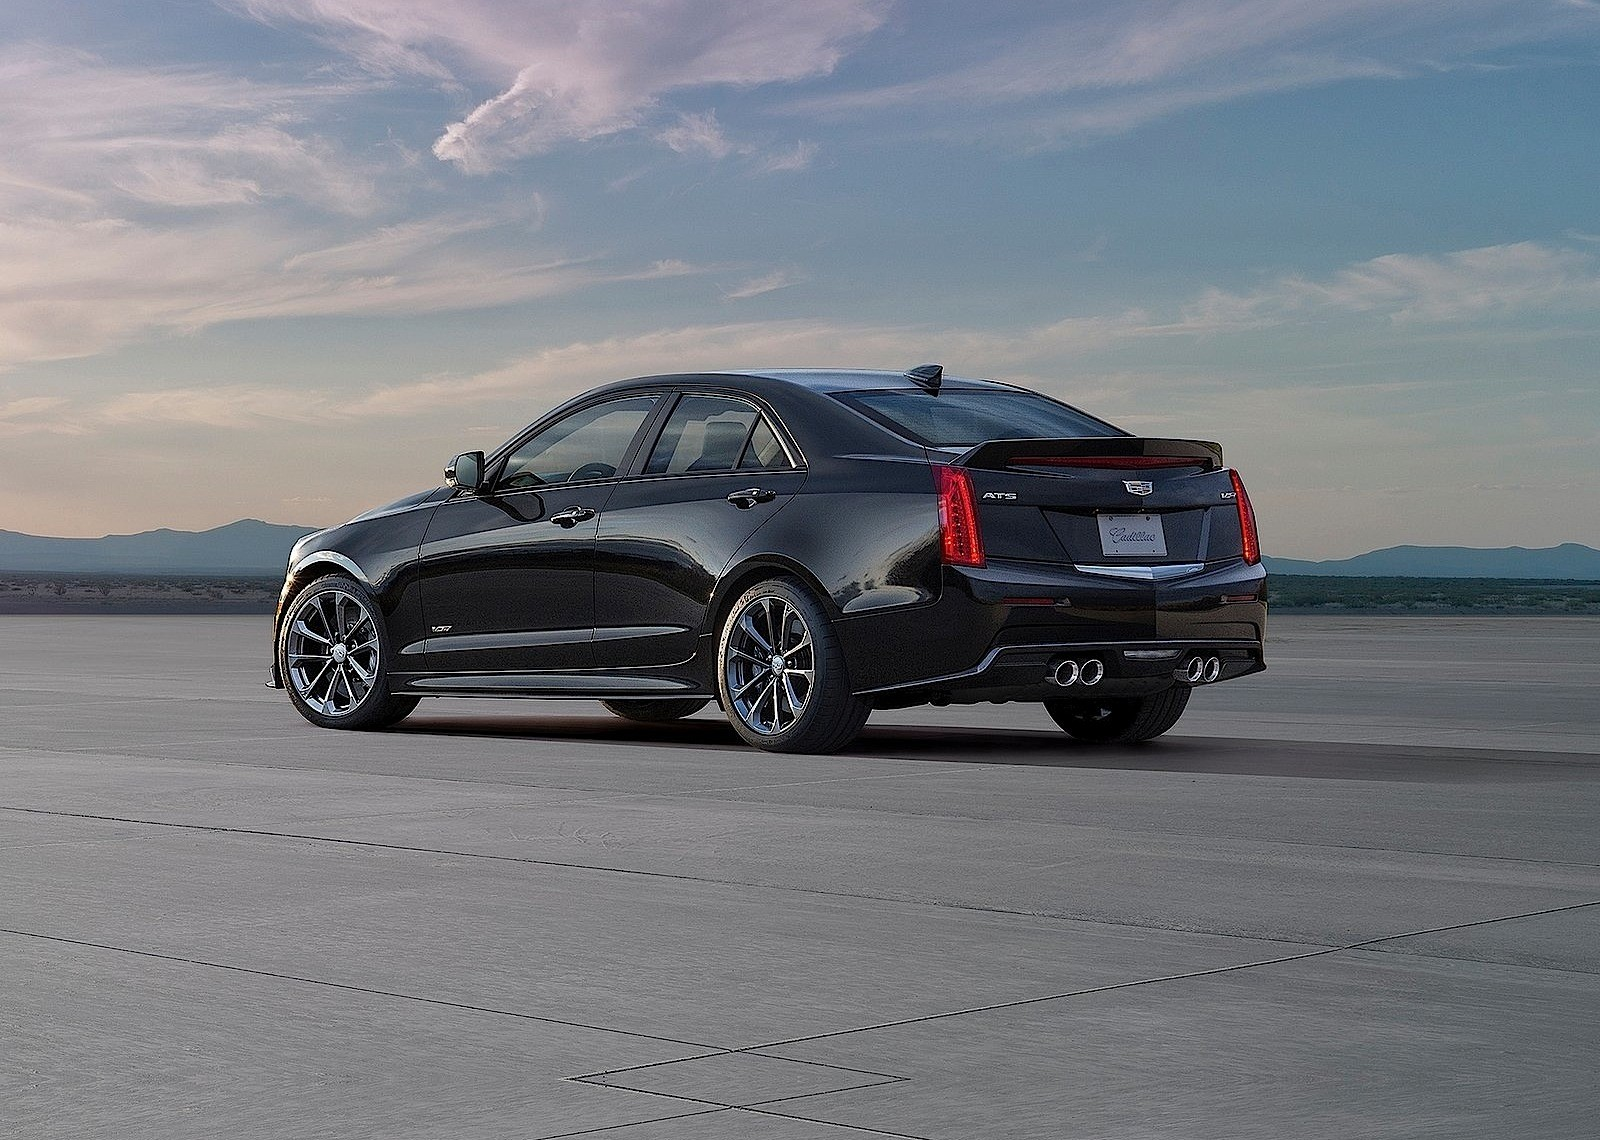 cadillac ats v specs 2015 2016 2017 2018 autoevolution. Black Bedroom Furniture Sets. Home Design Ideas